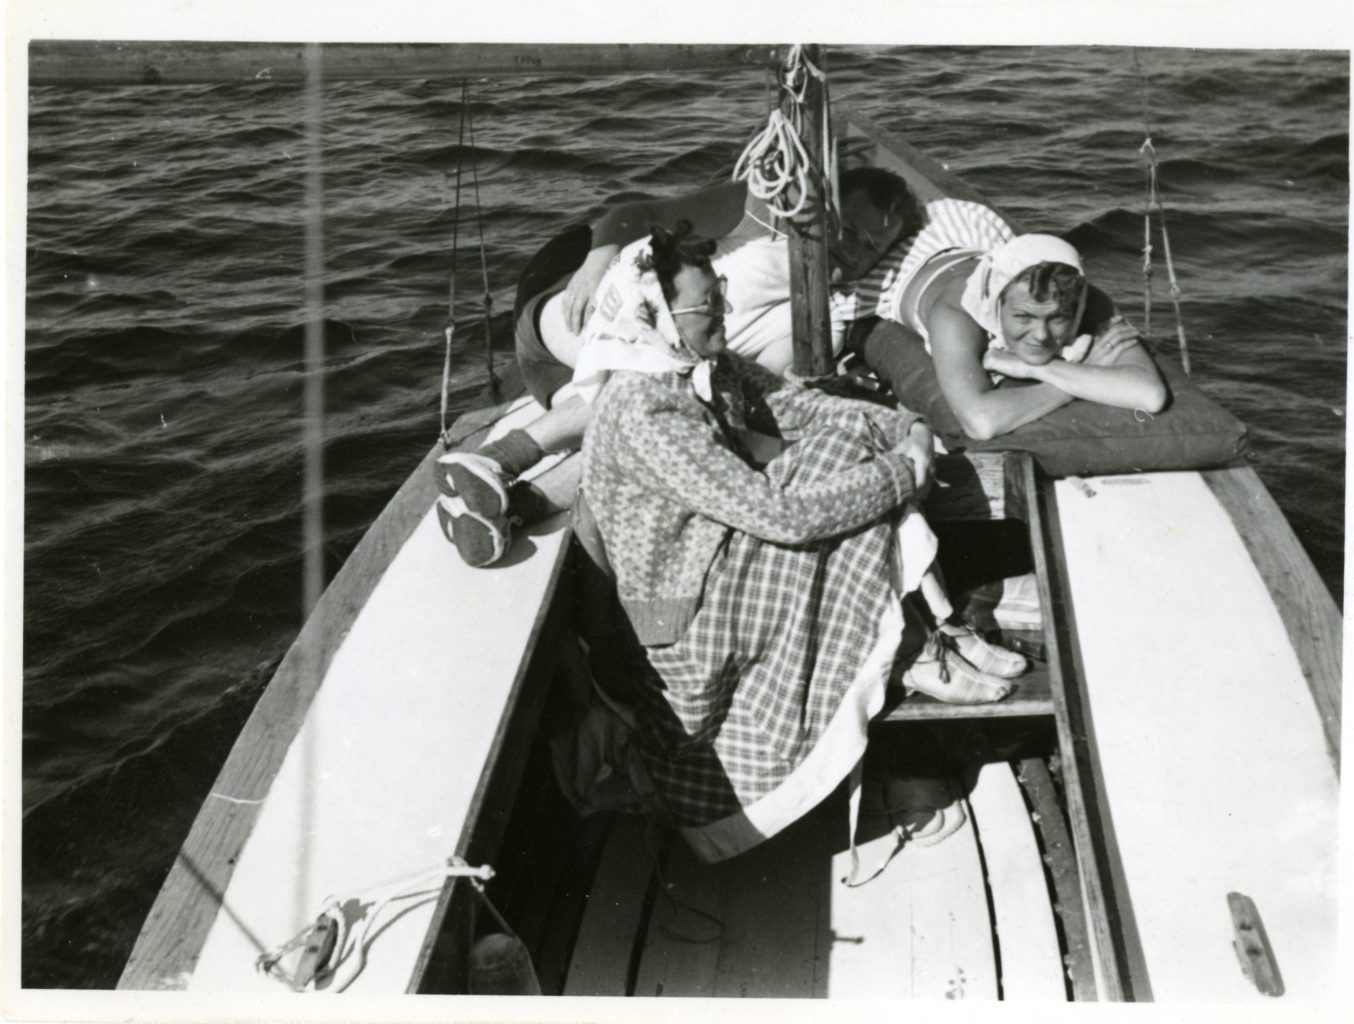 Three people on a boat.